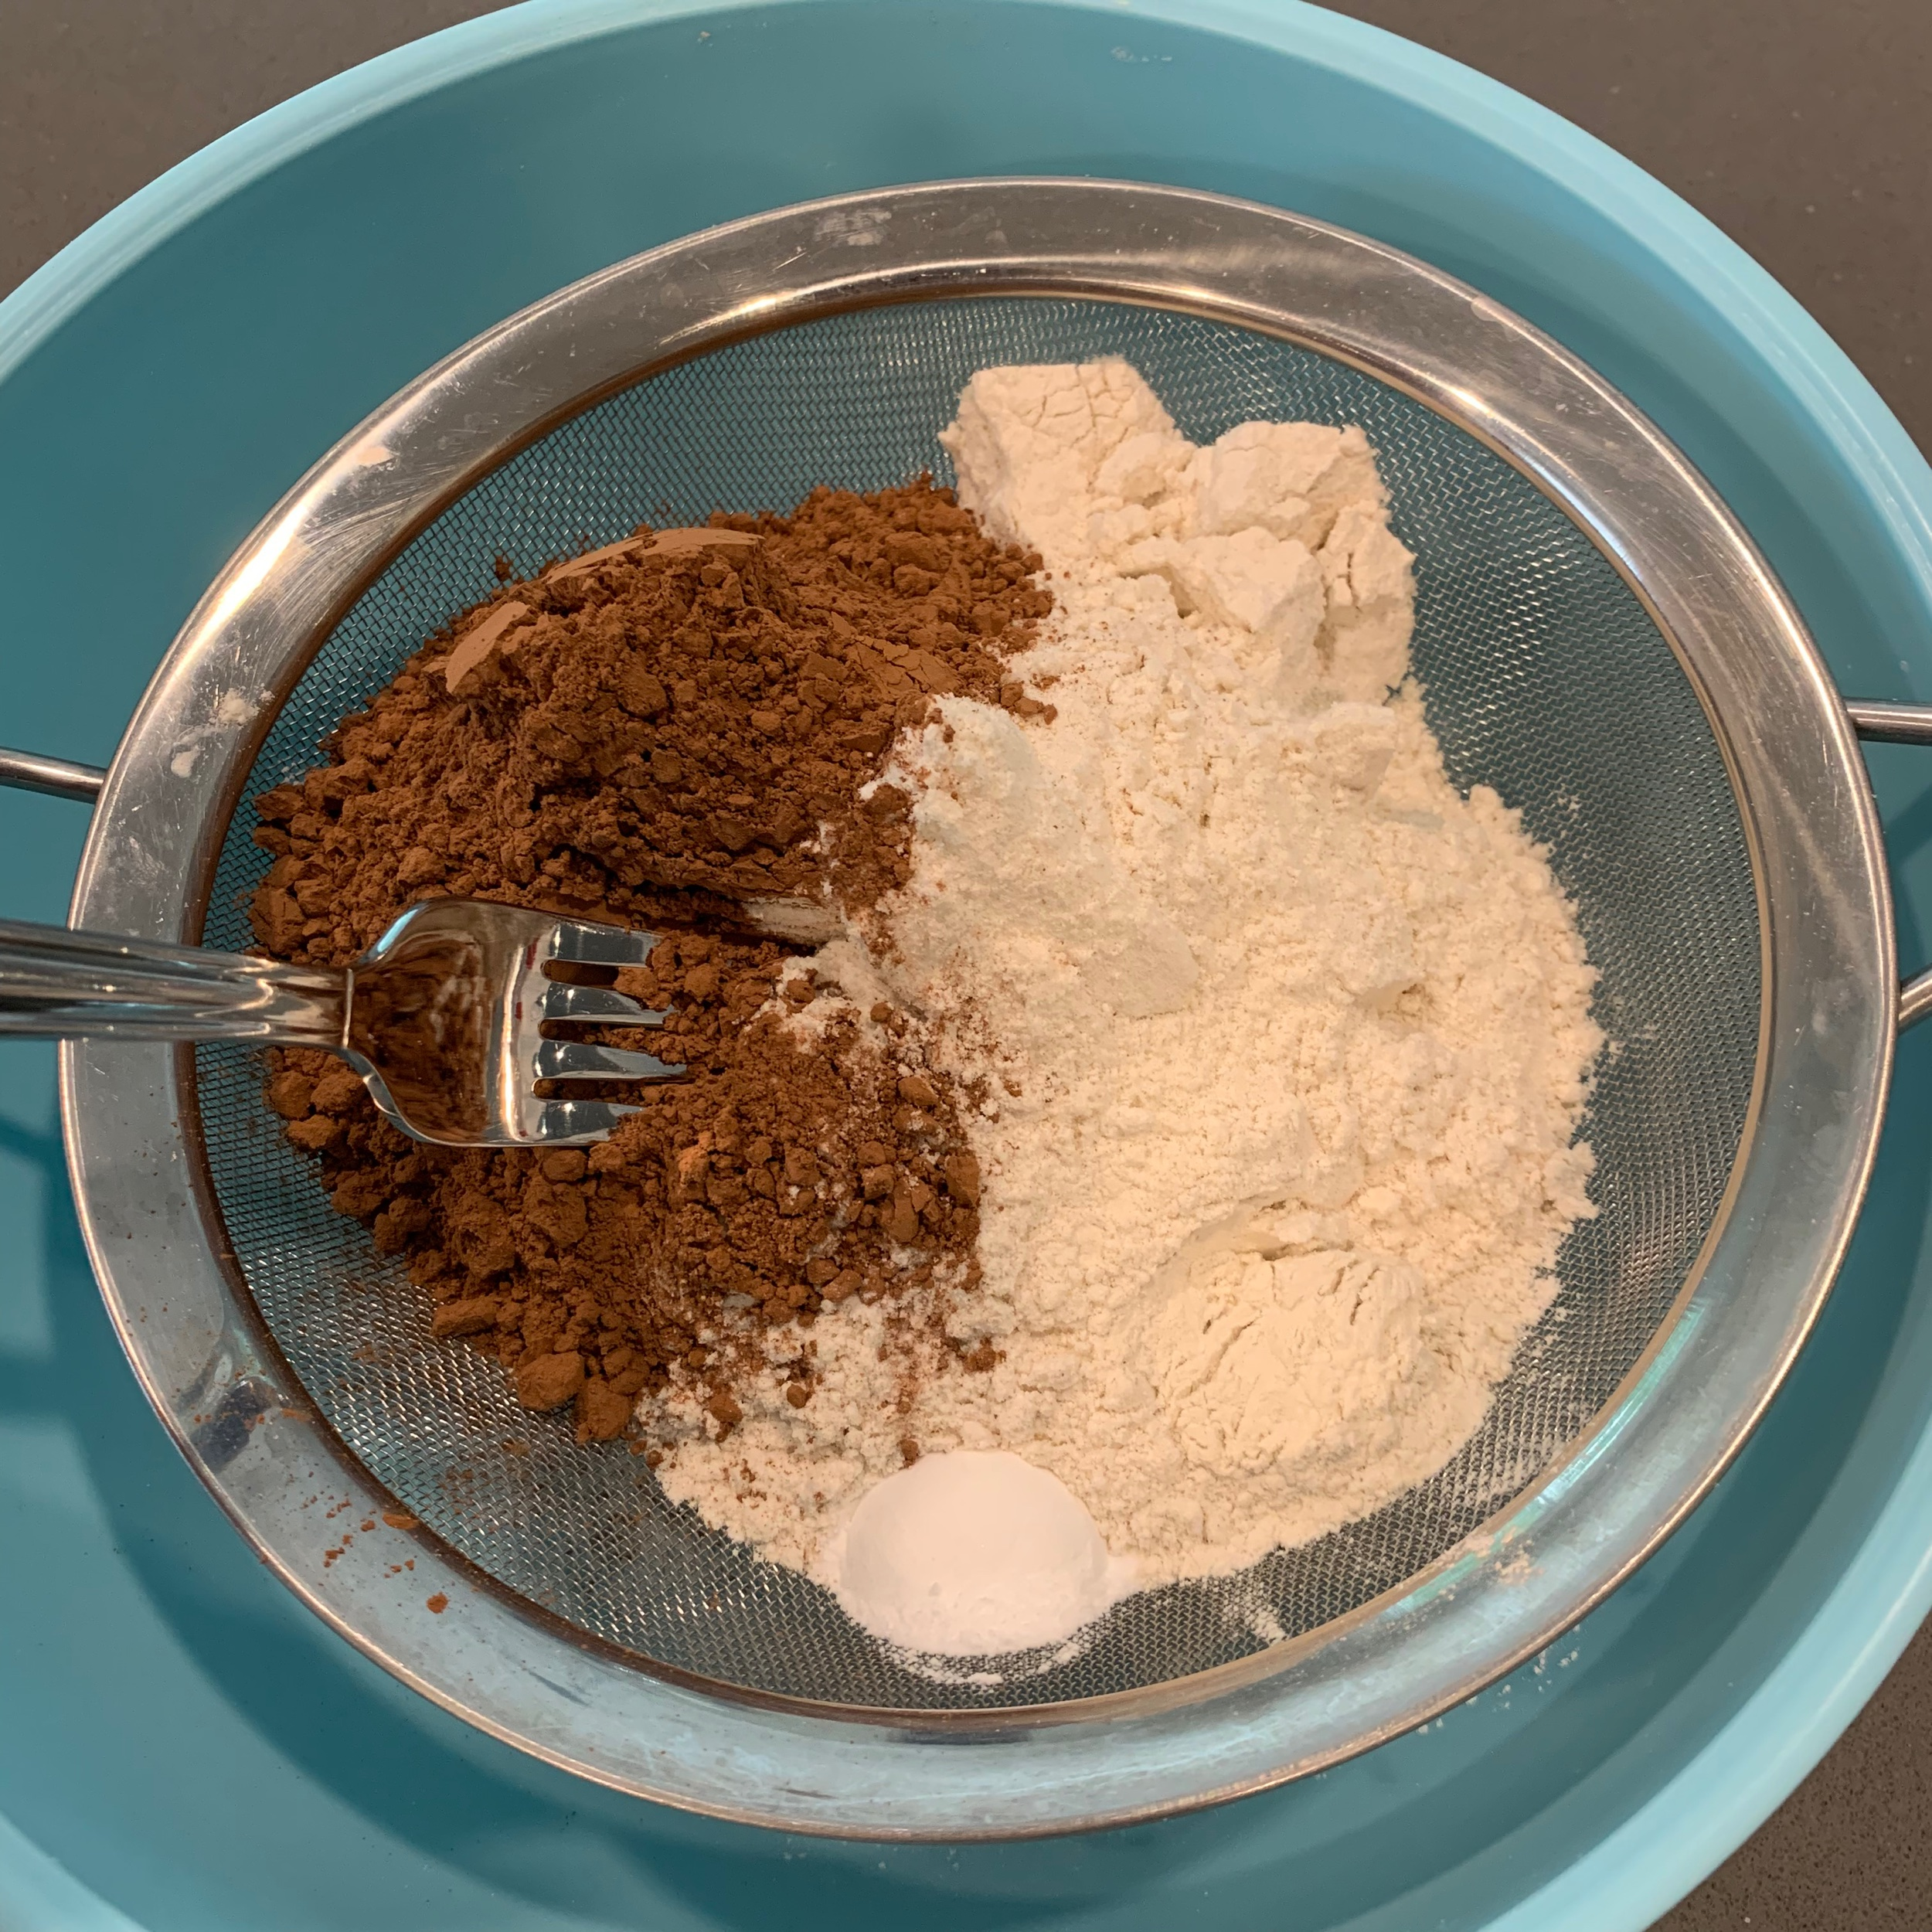 Sift the flour ingredients into a large bowl using a fork